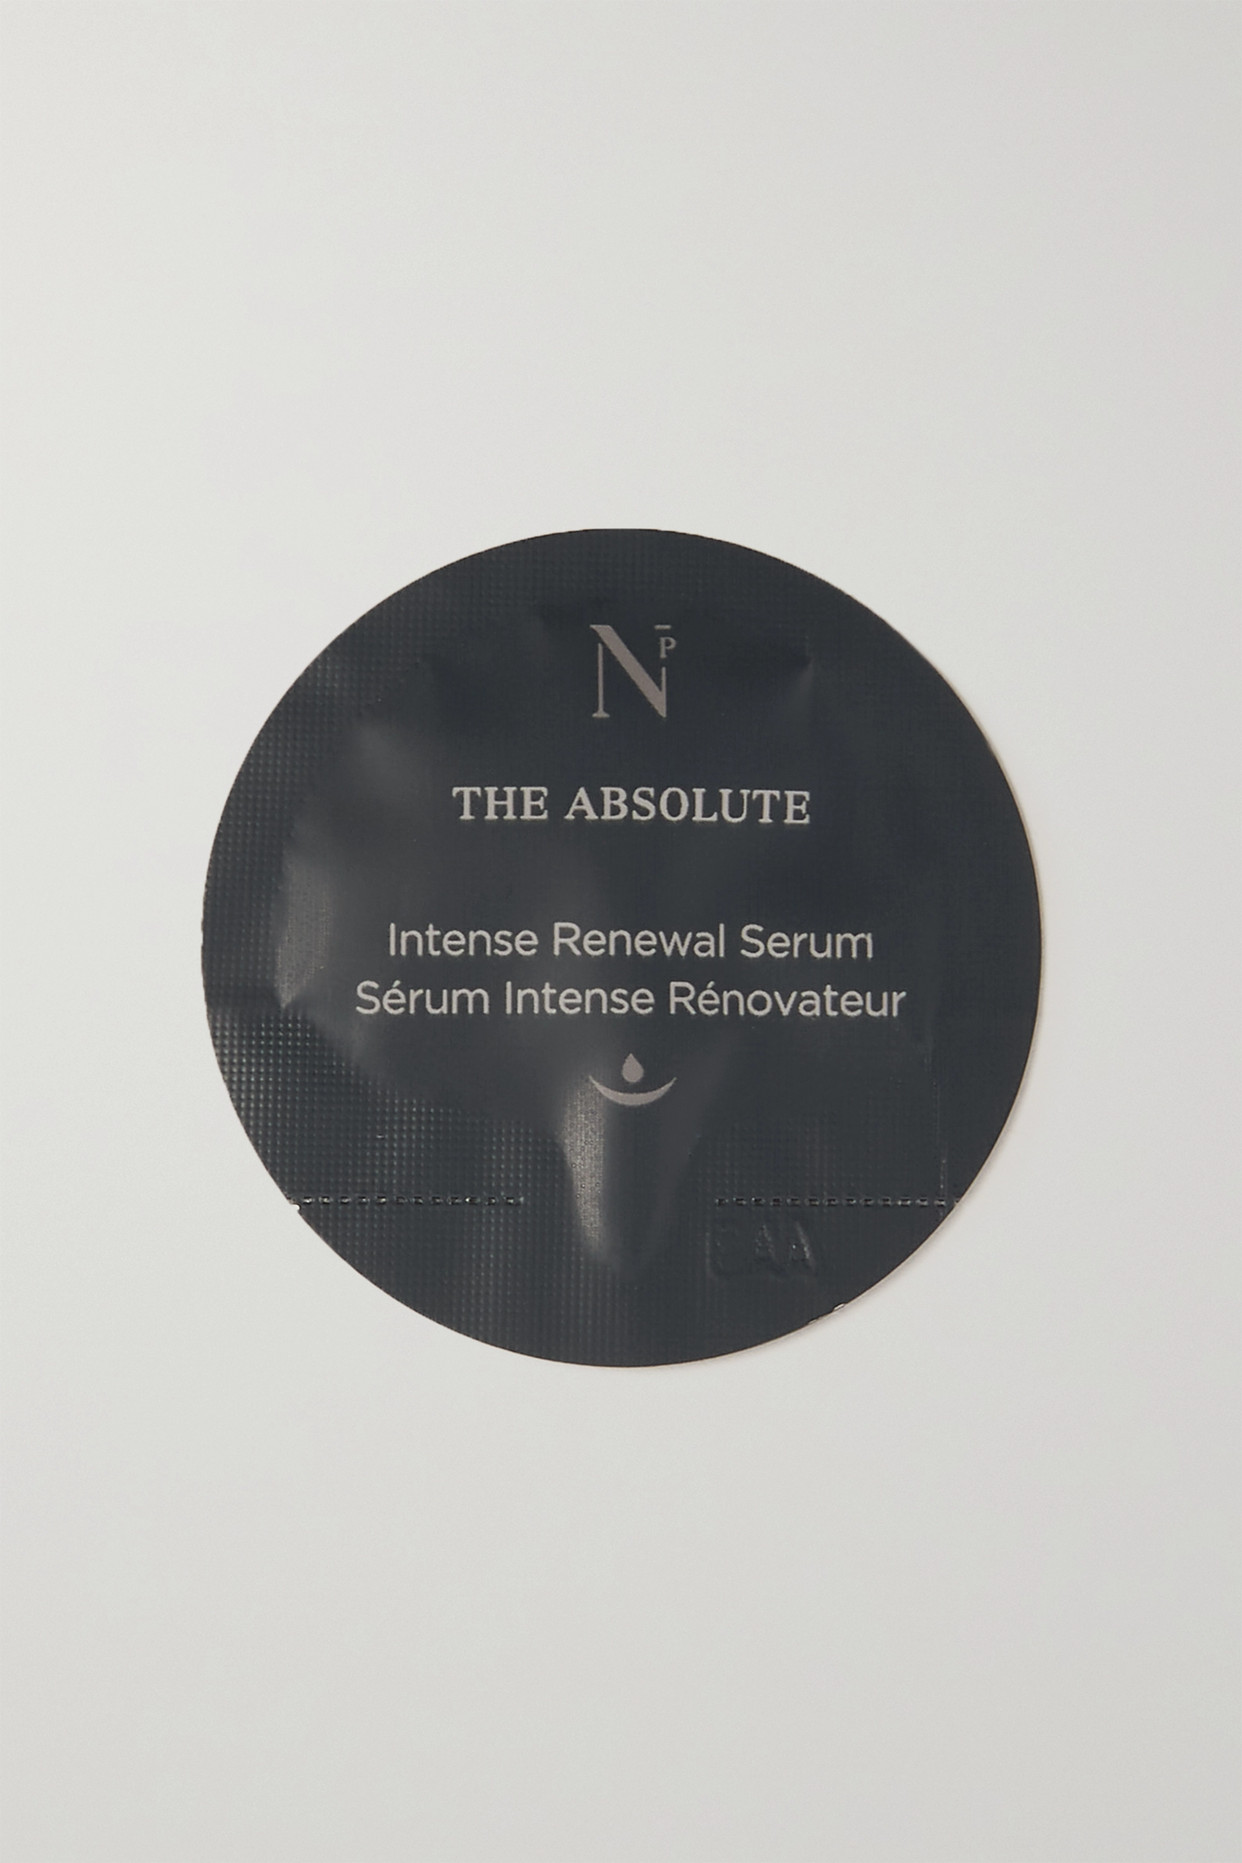 NOBLE PANACEA - The Absolute Intense Renewal Serum Refill, 30 X 0.5ml - one size